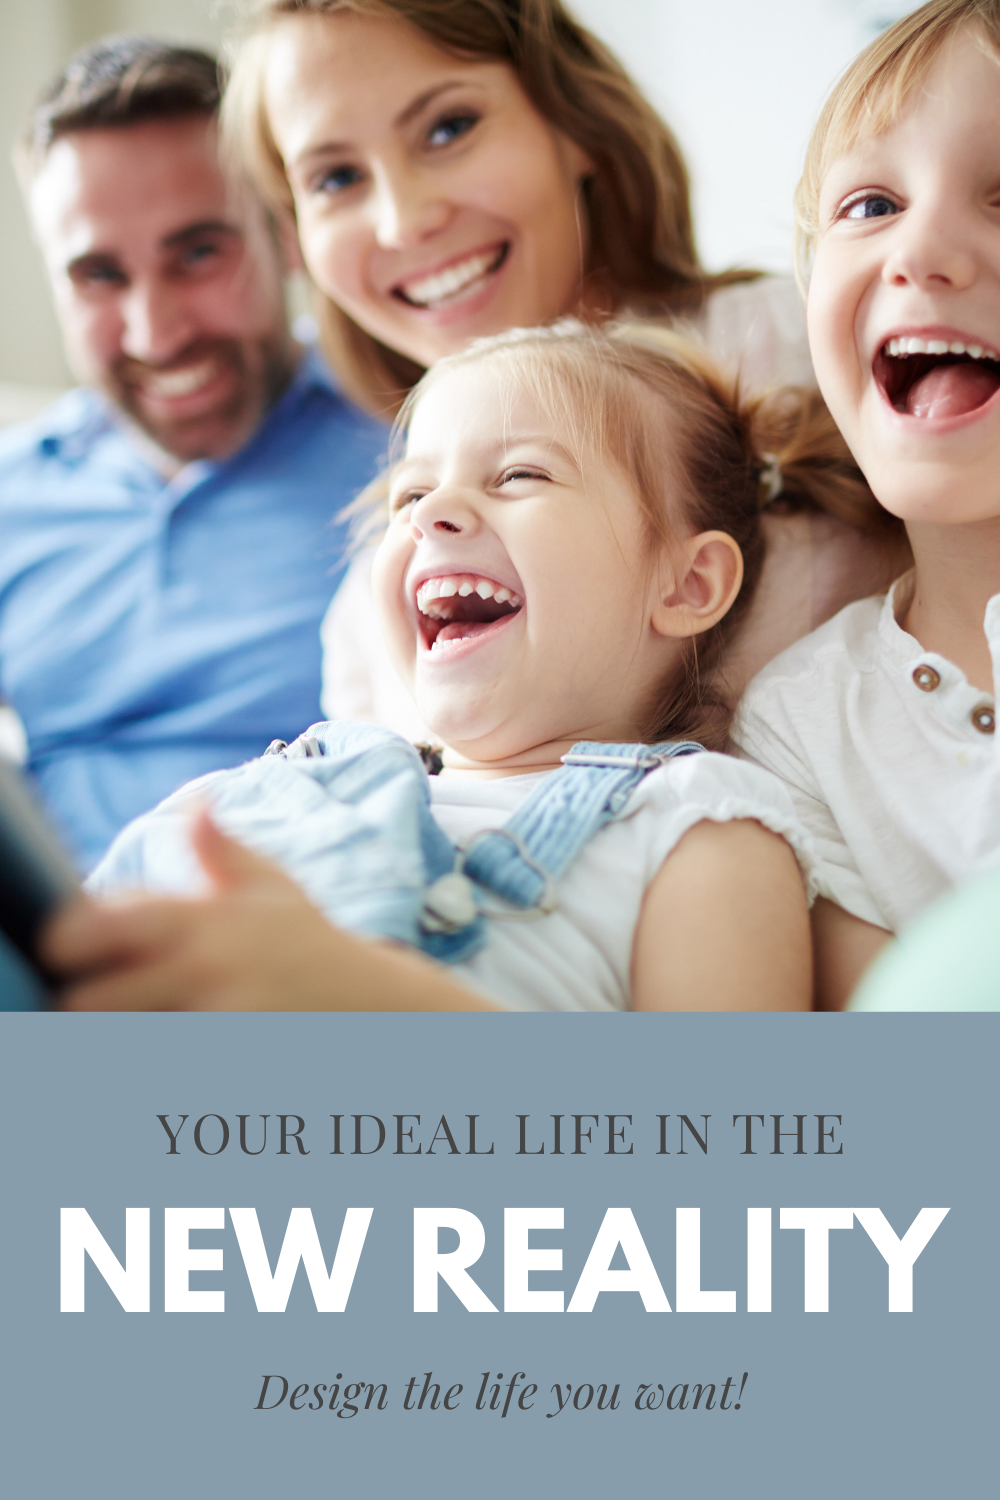 Your ideal life in the new reality. Designing the life you want.